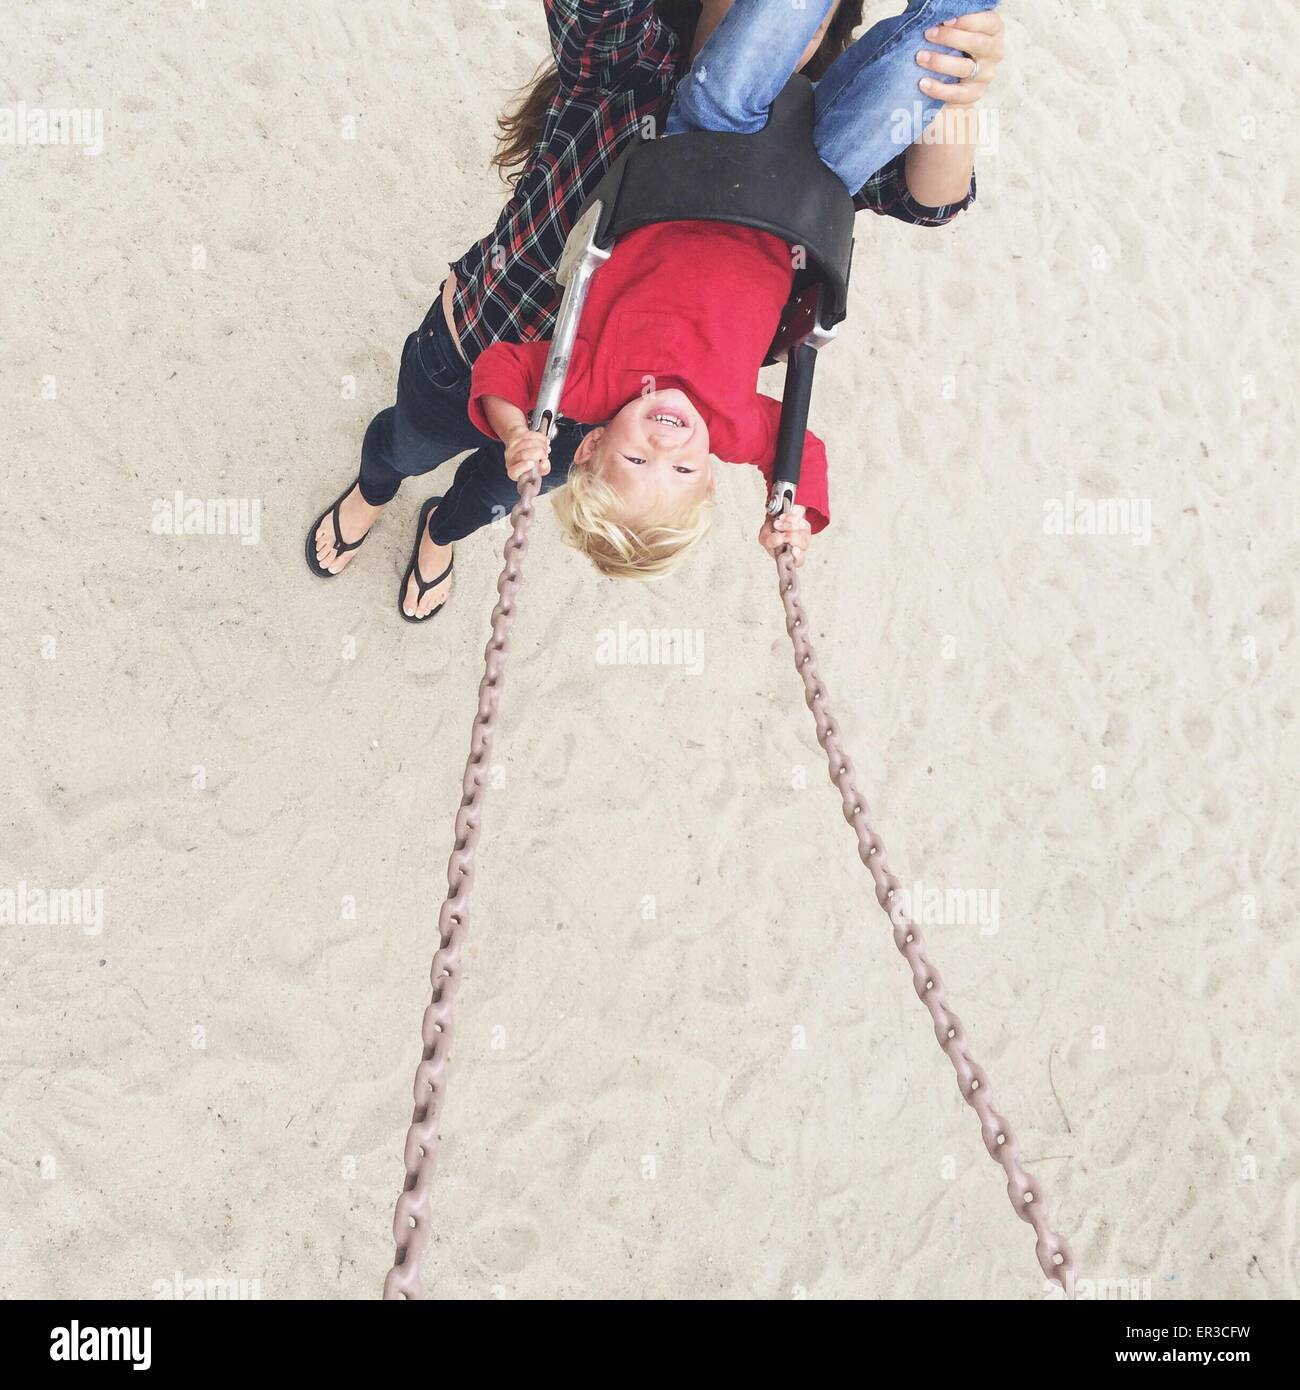 Elevated view of a woman pushing her son on a swing - Stock Image